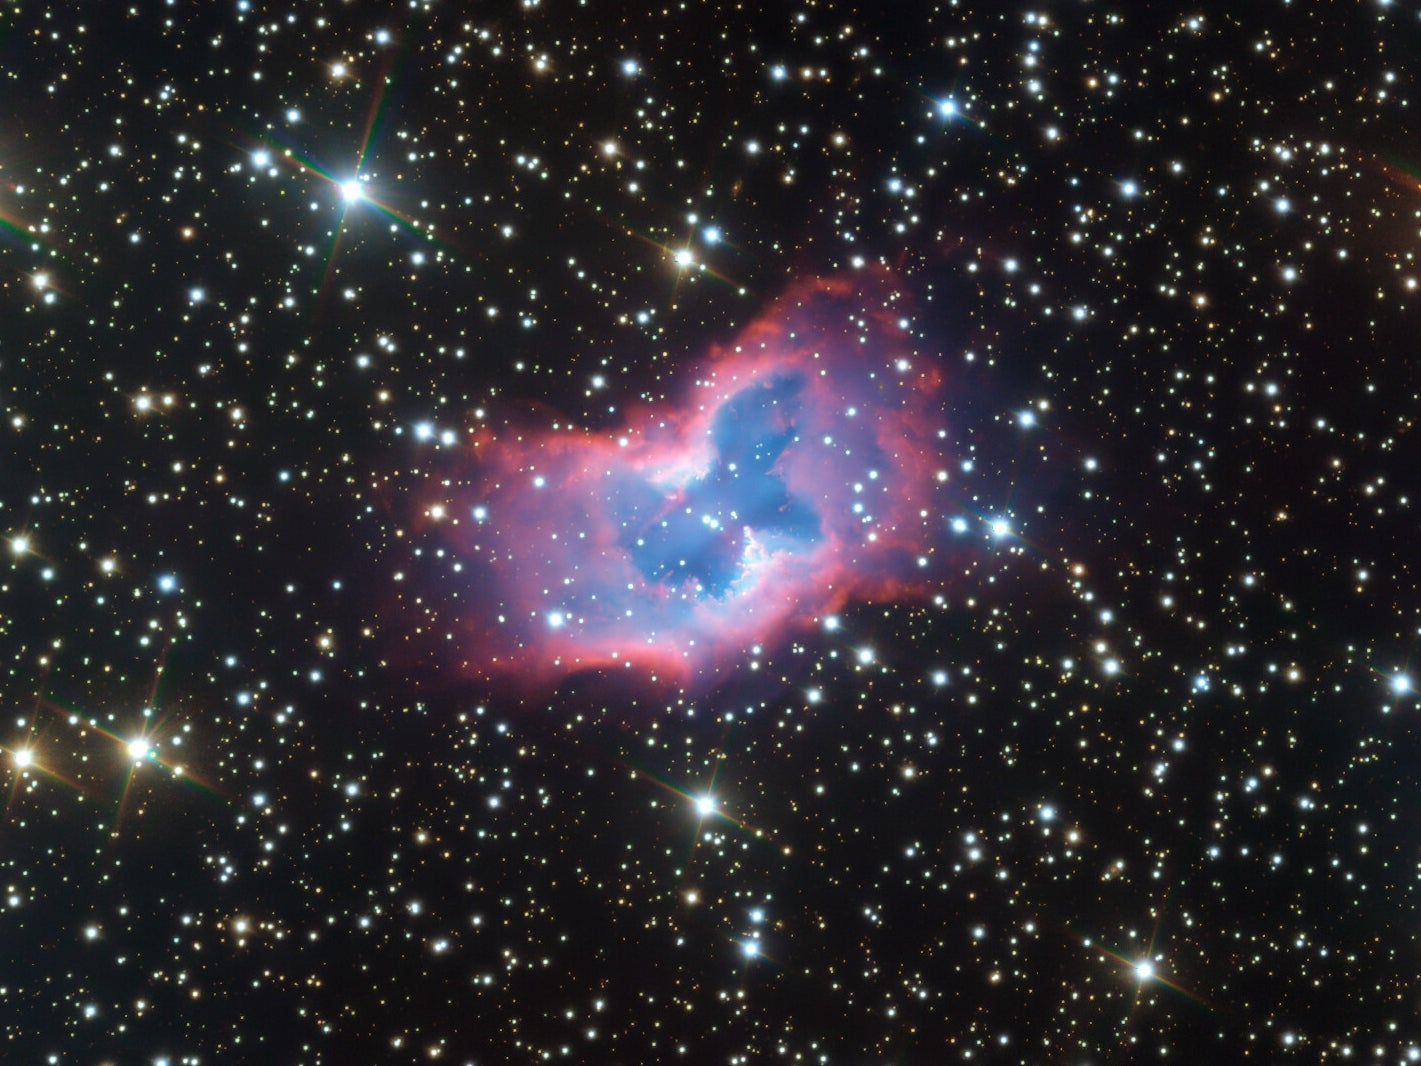 This highly detailed image of the fantastic NGC 2899 planetary nebula was captured using the FORS instrument on ESO's Very Large Telescope in northern Chile.